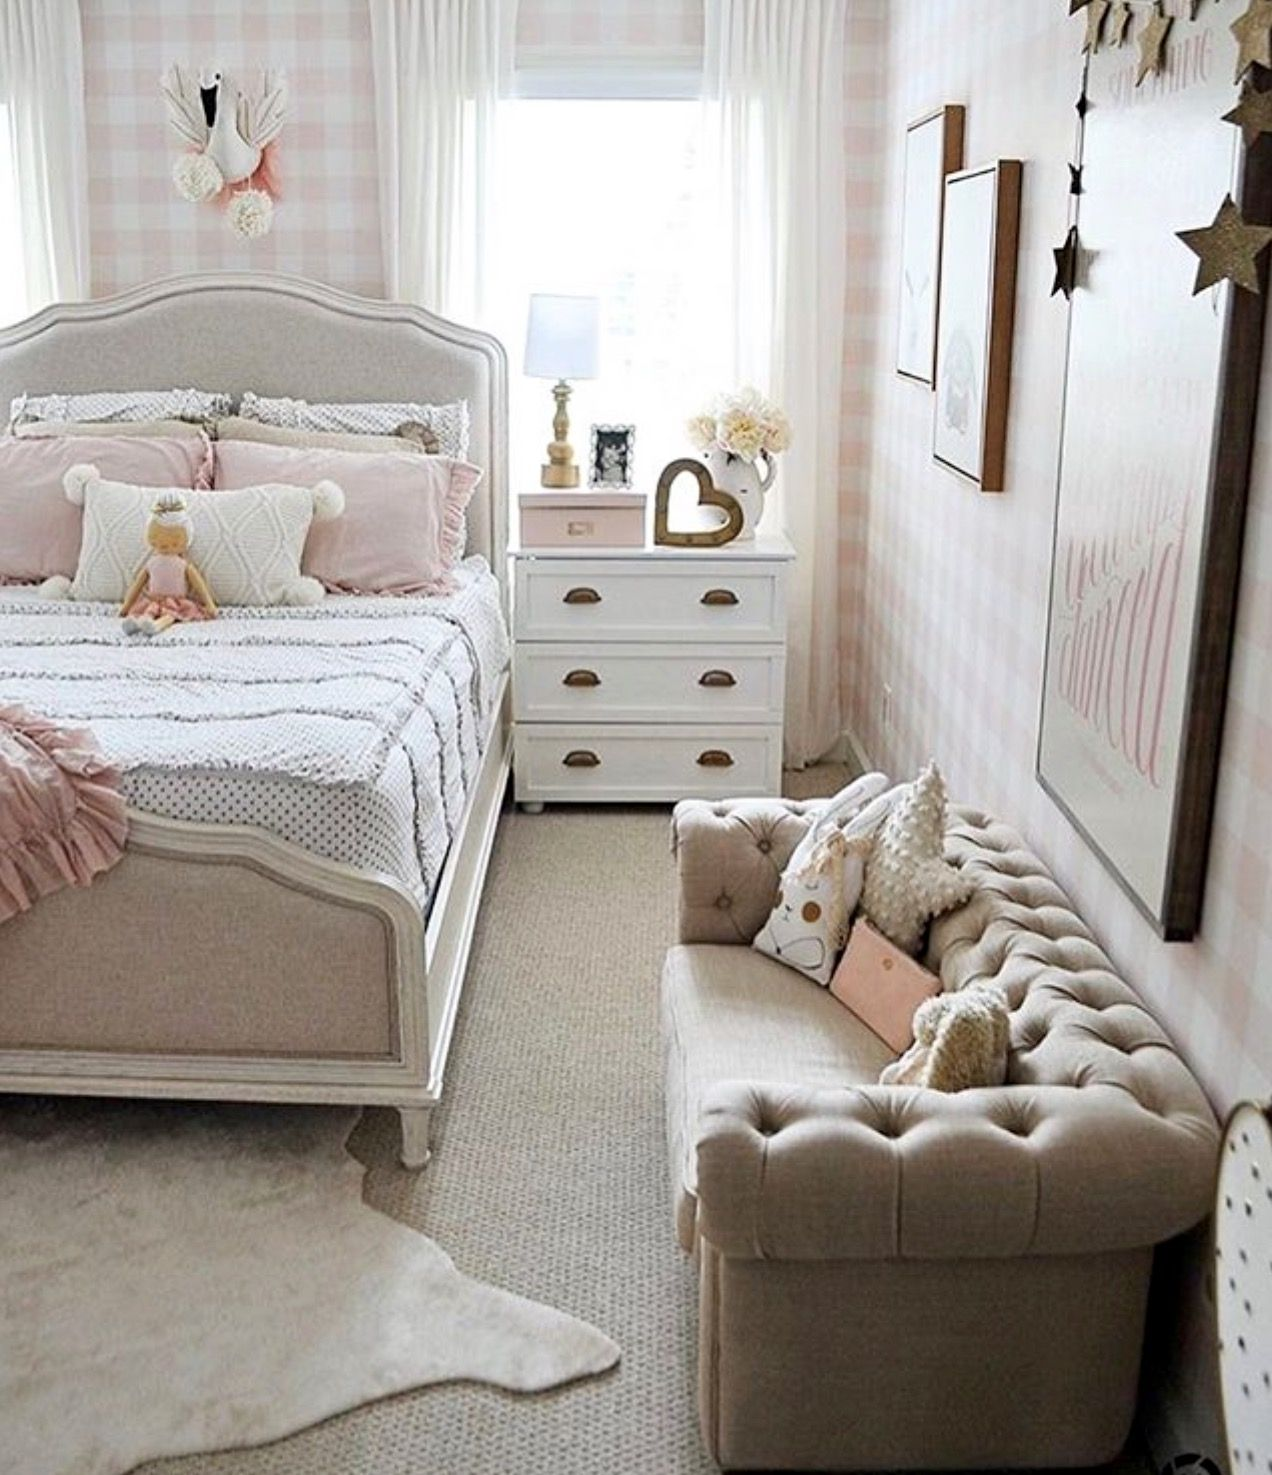 Little Couch For Bedroom Darling Little Girl S Room Bedrooms Small Room Bedroom